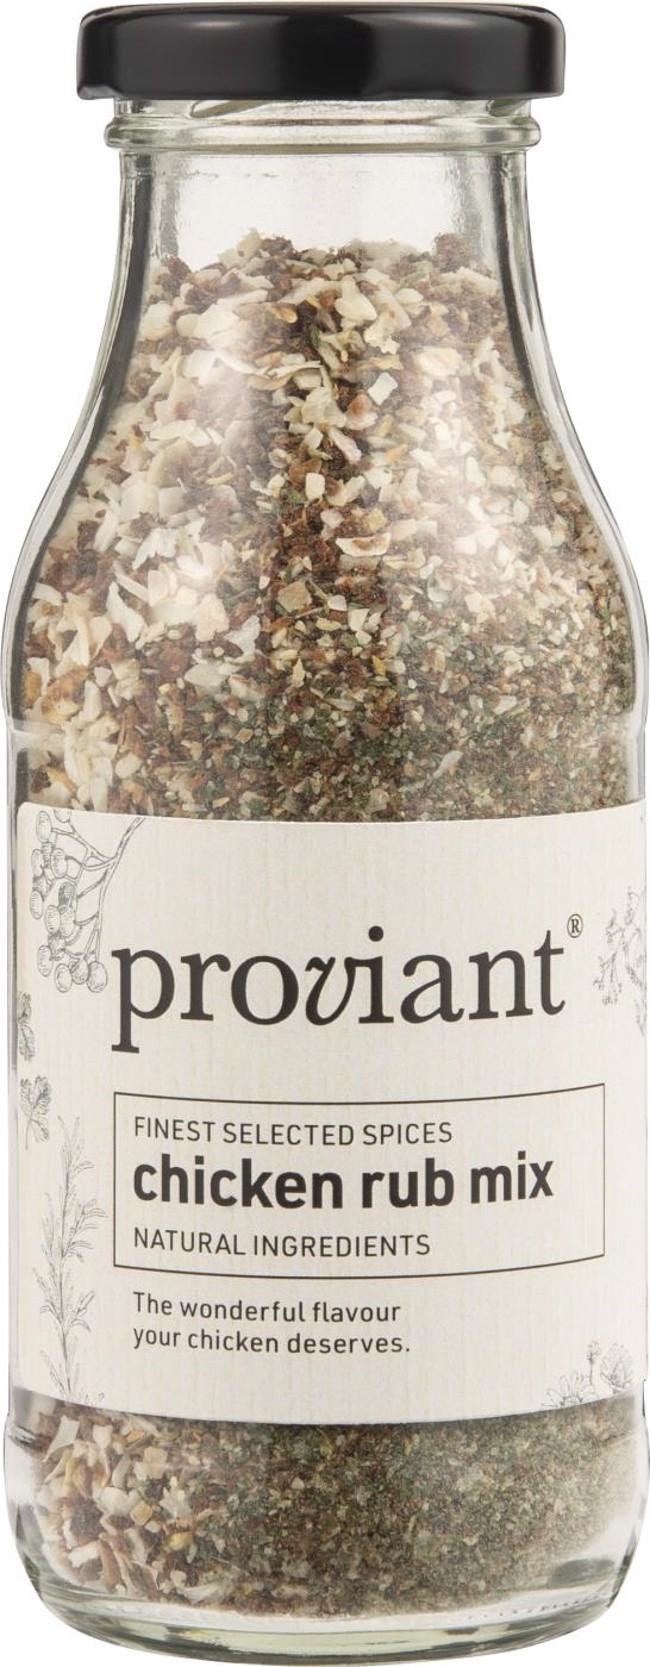 Image of   Proviant chicken rub mix 150 g fra Ib Laursen